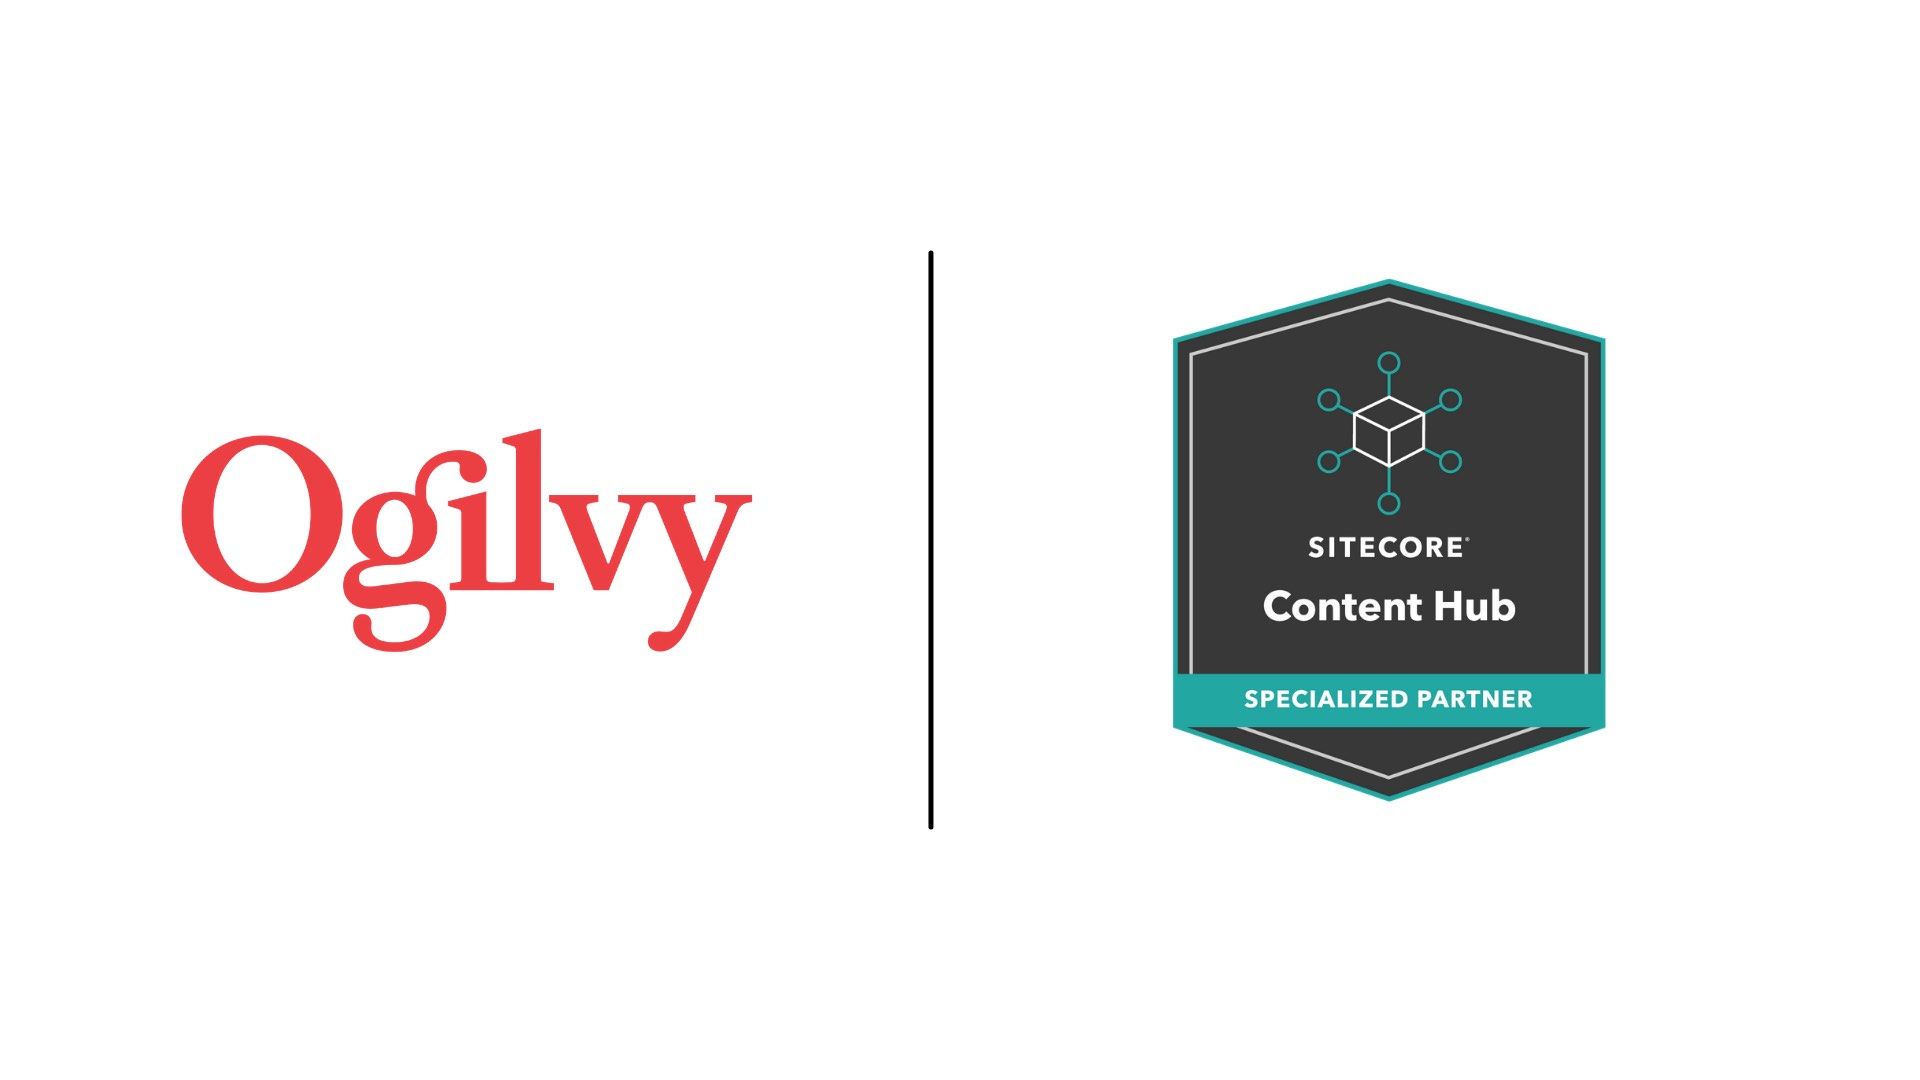 Ogilvy strengthens services and experiences for clients with transforming technology